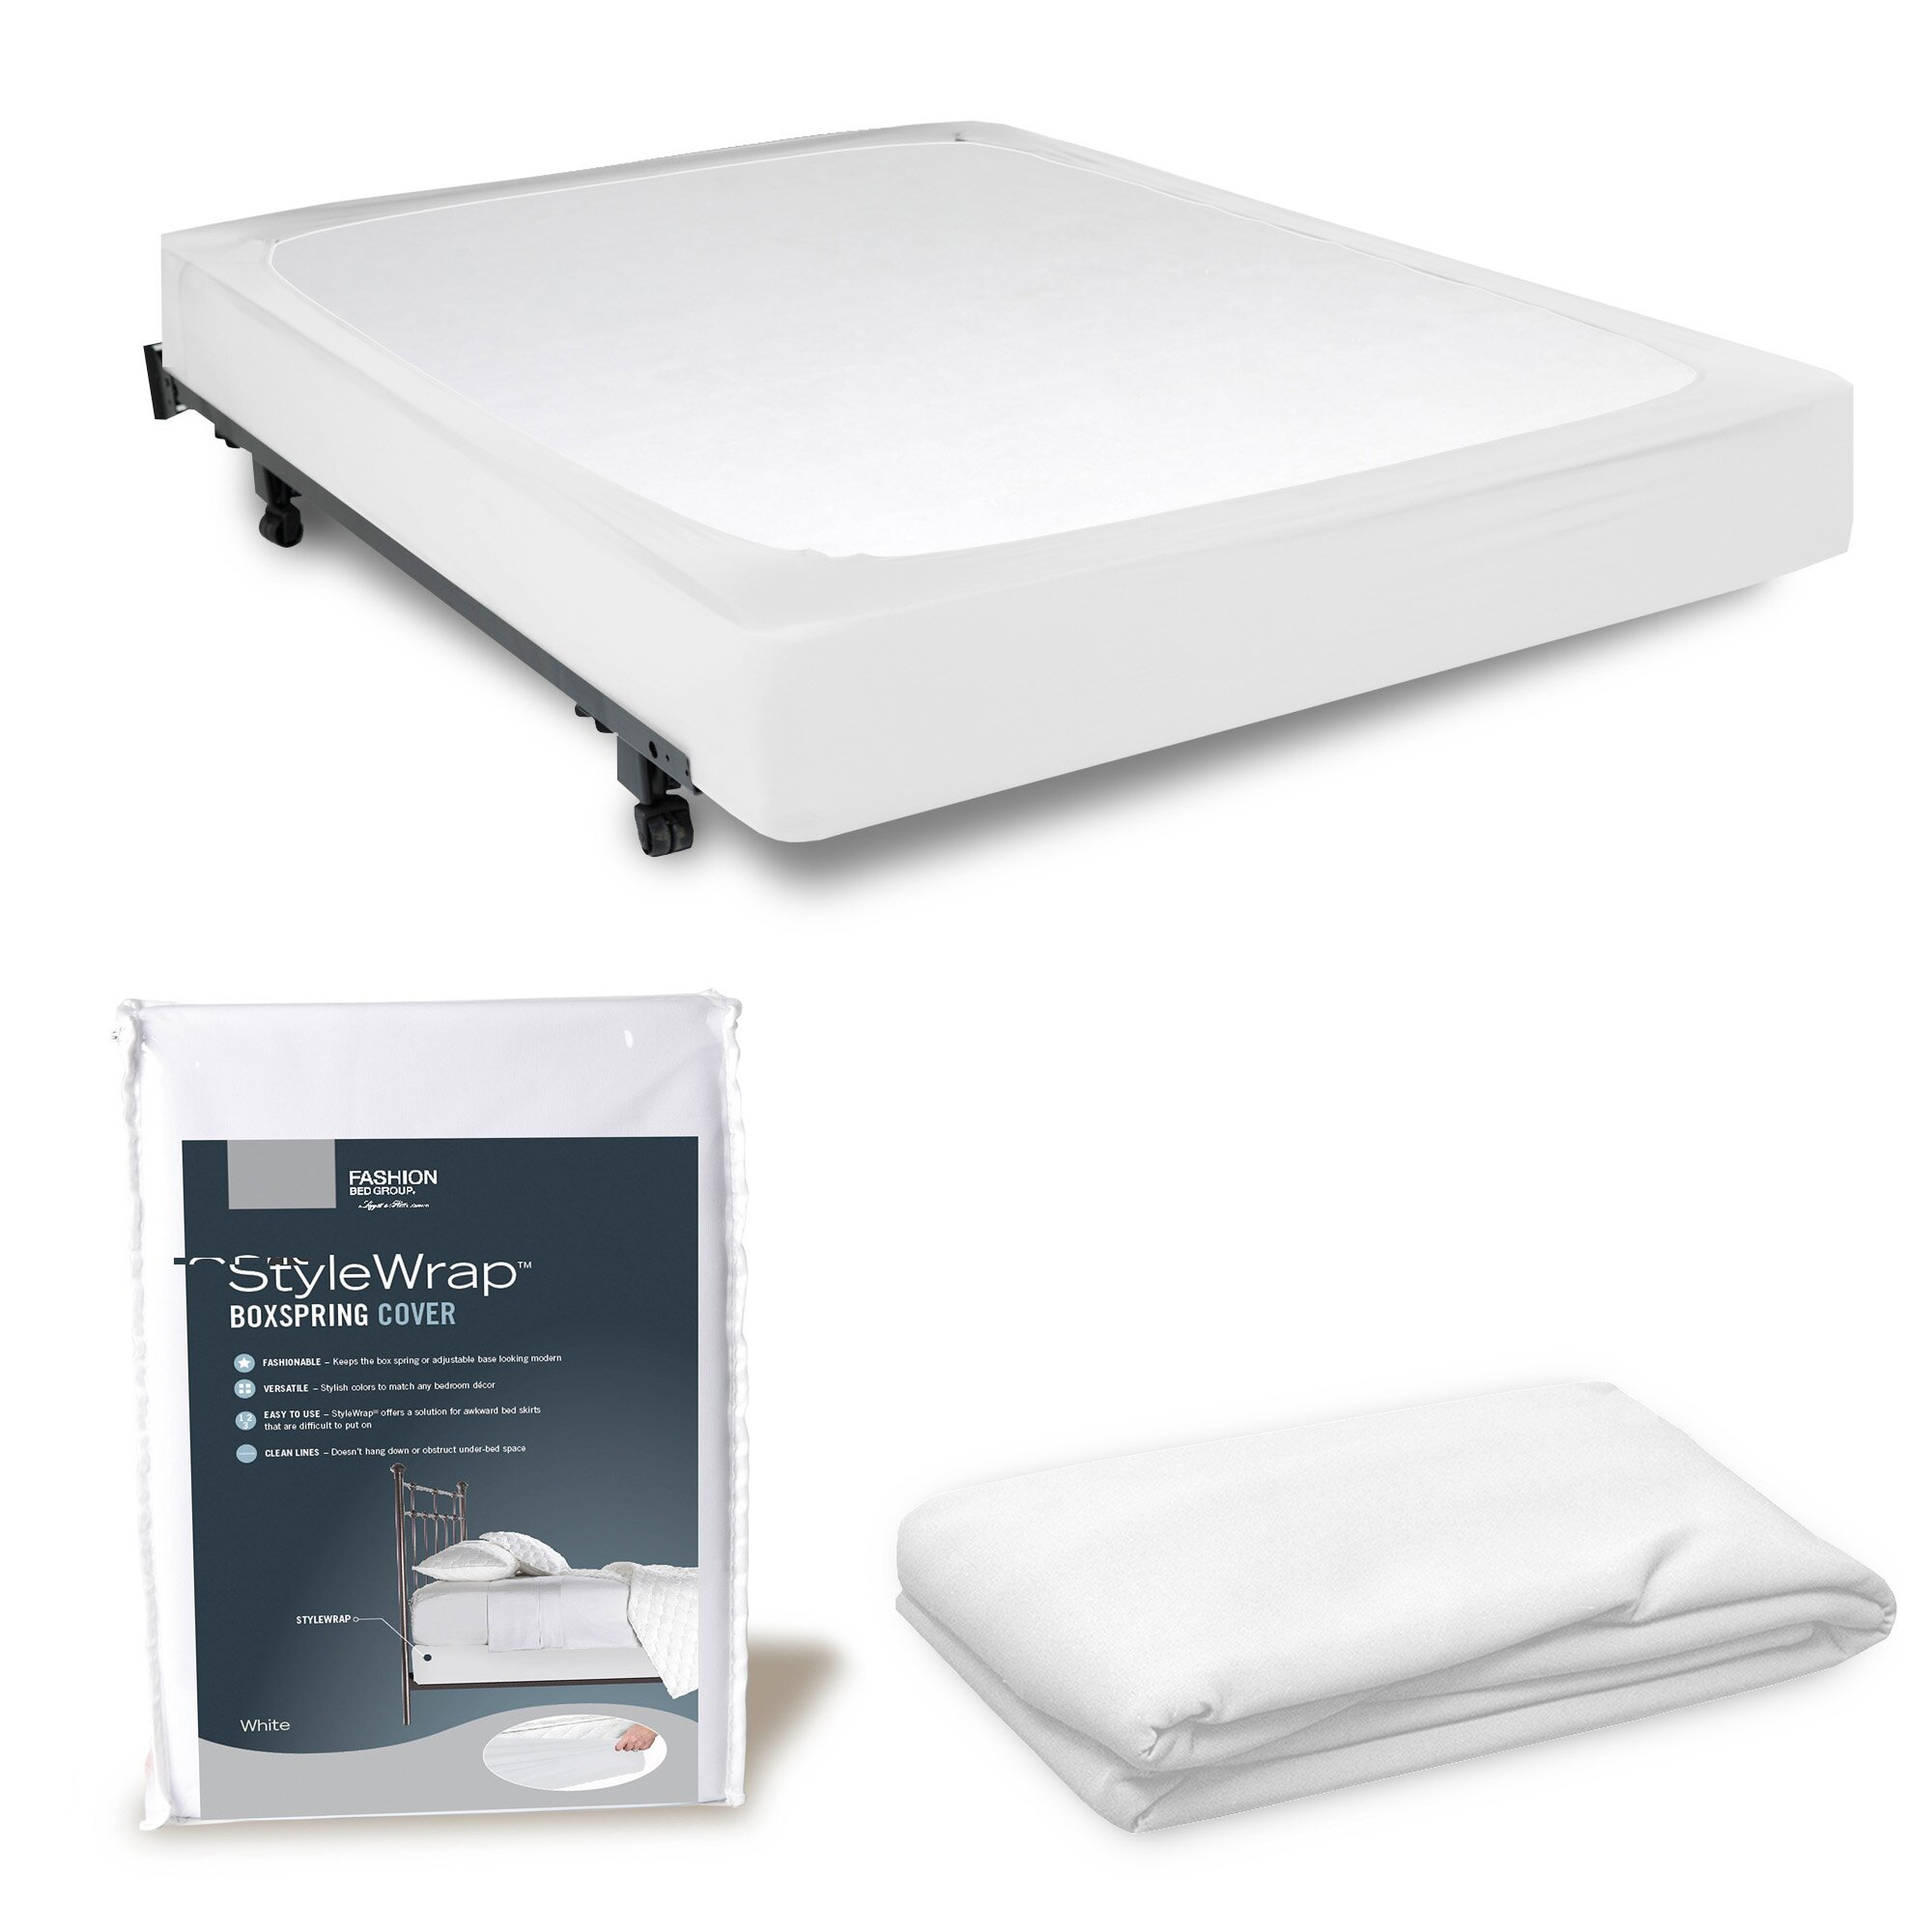 StyleWrap Box Spring Cover